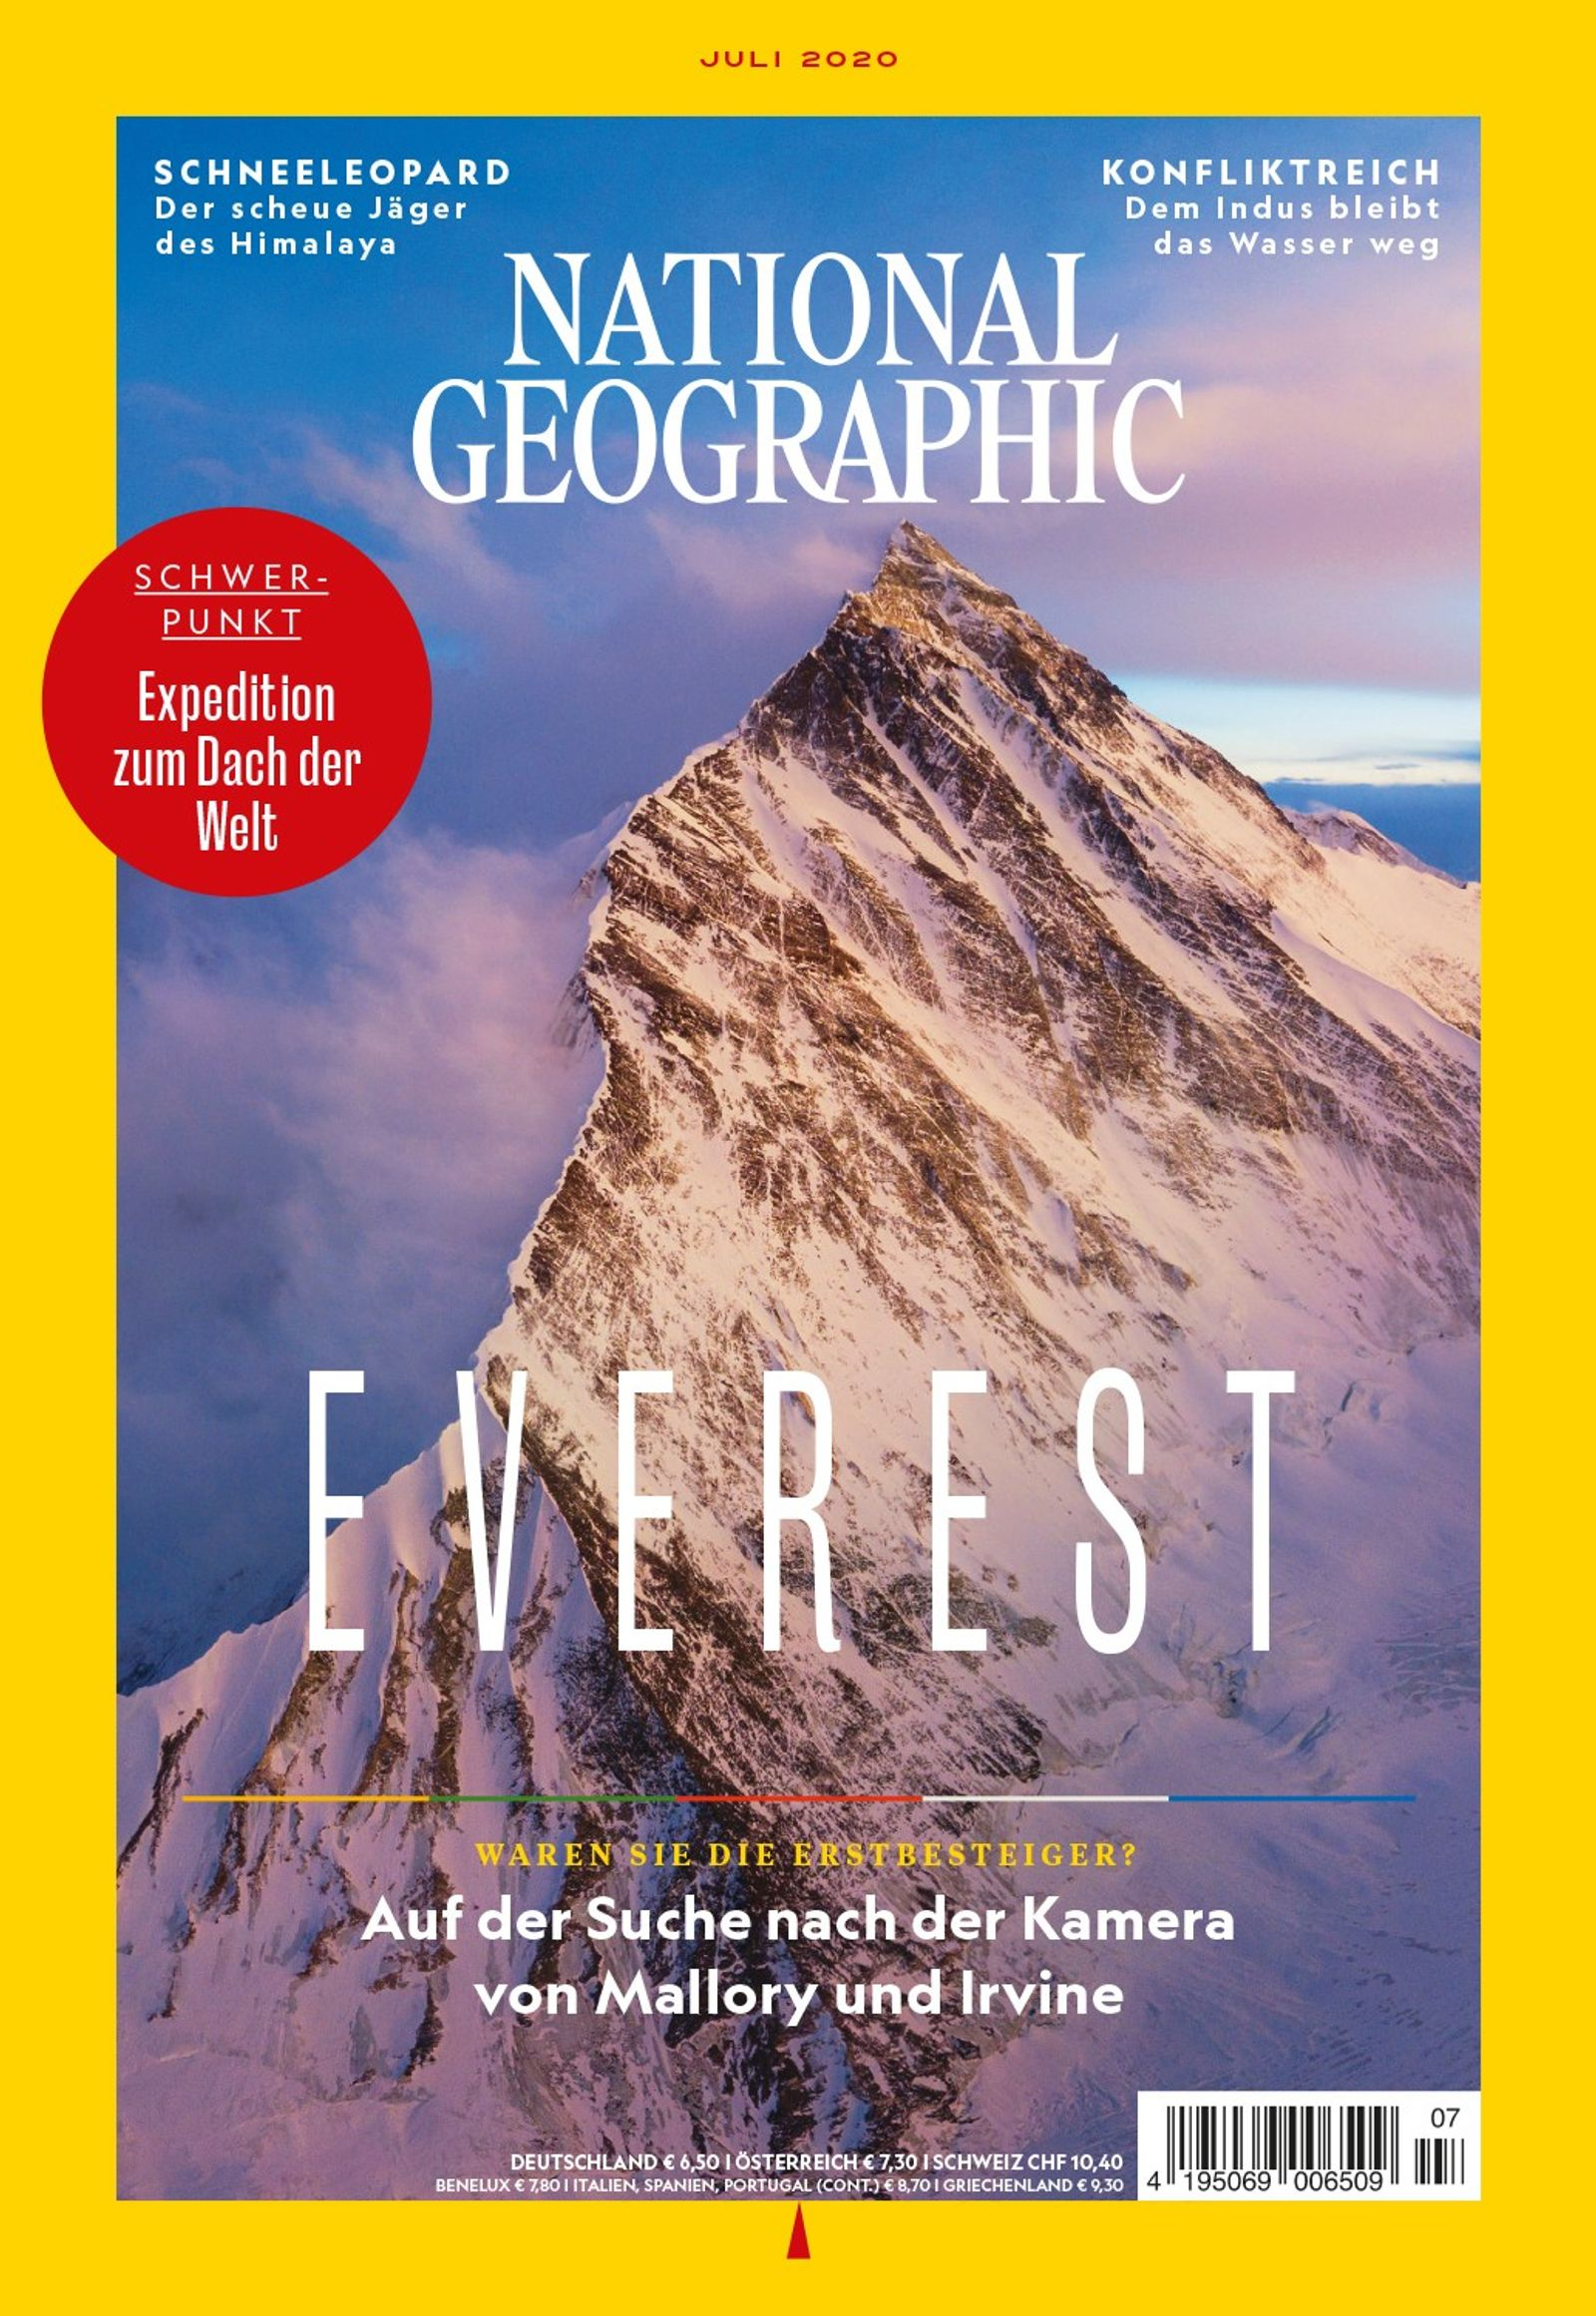 National Geographic-Magazin Juli 2020, Titelthema: Everest